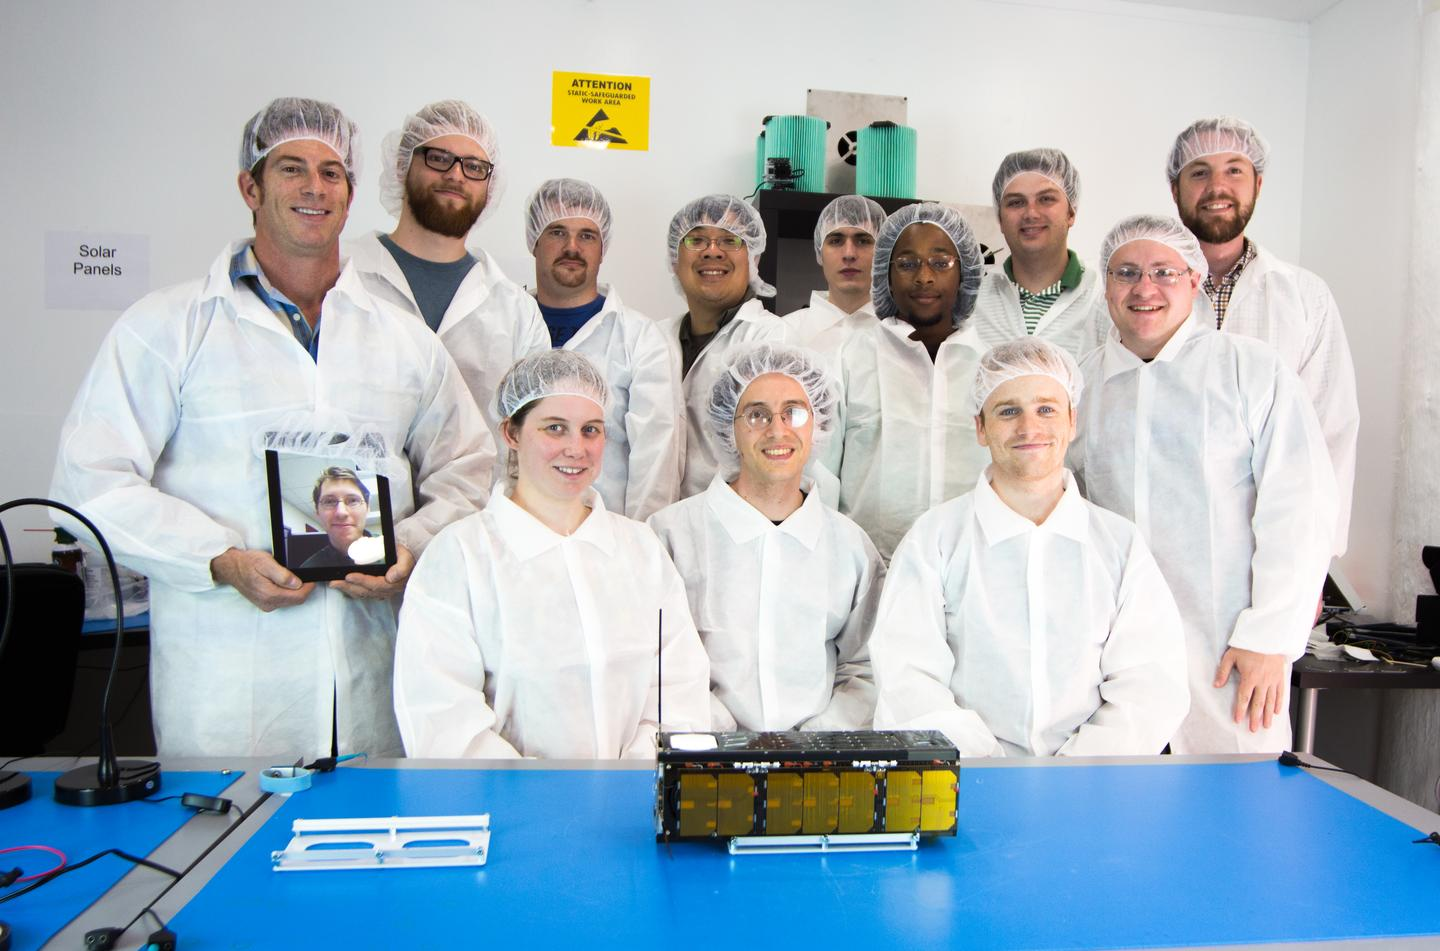 The Spire team, with one of the CubeSats